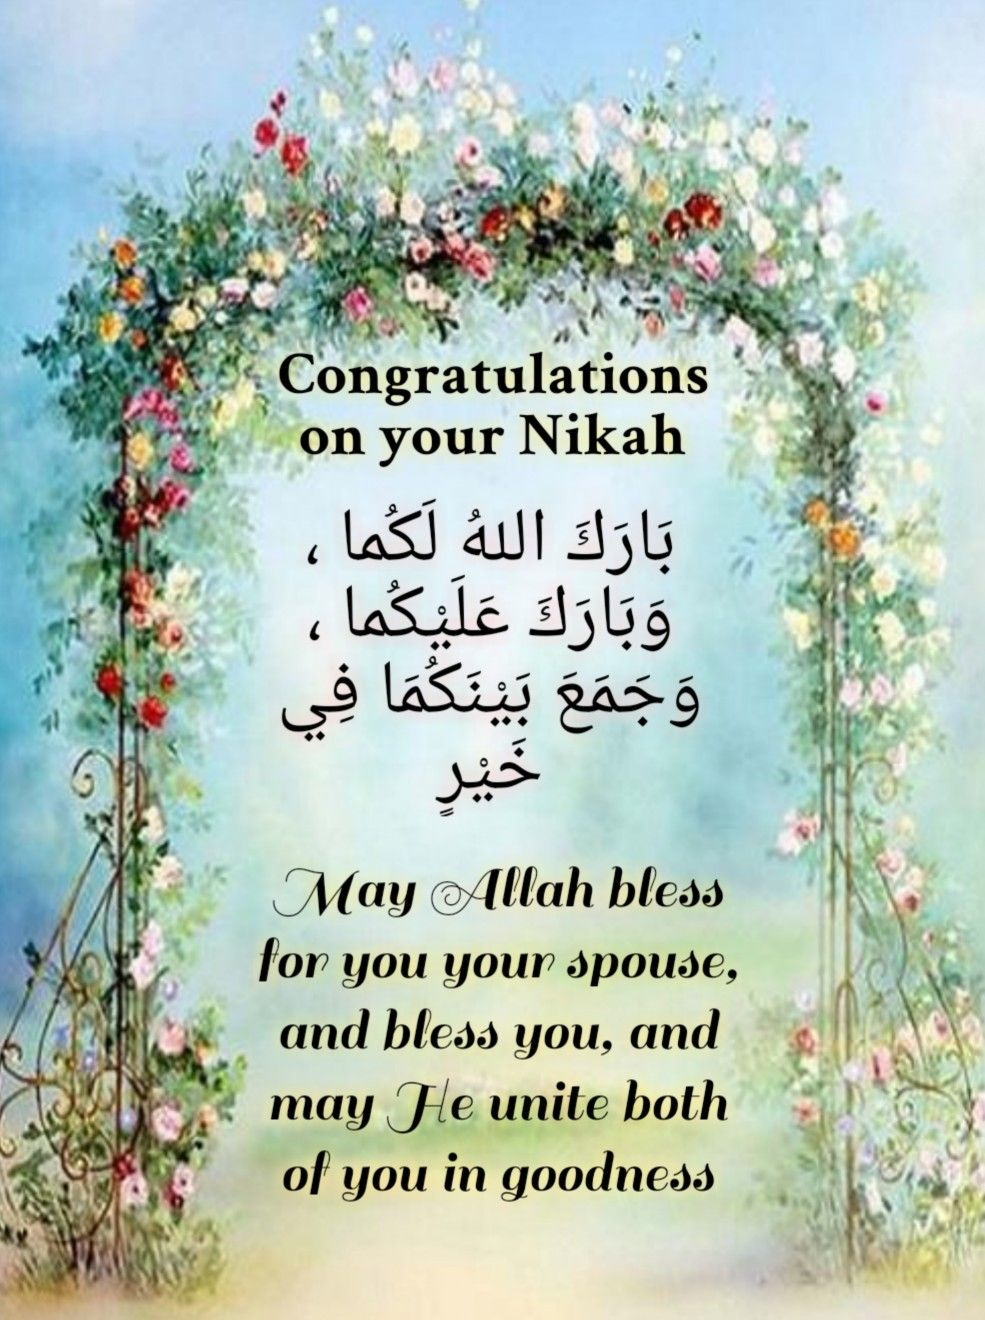 Dua for newly Wed, congratulations on nikah | Wedding